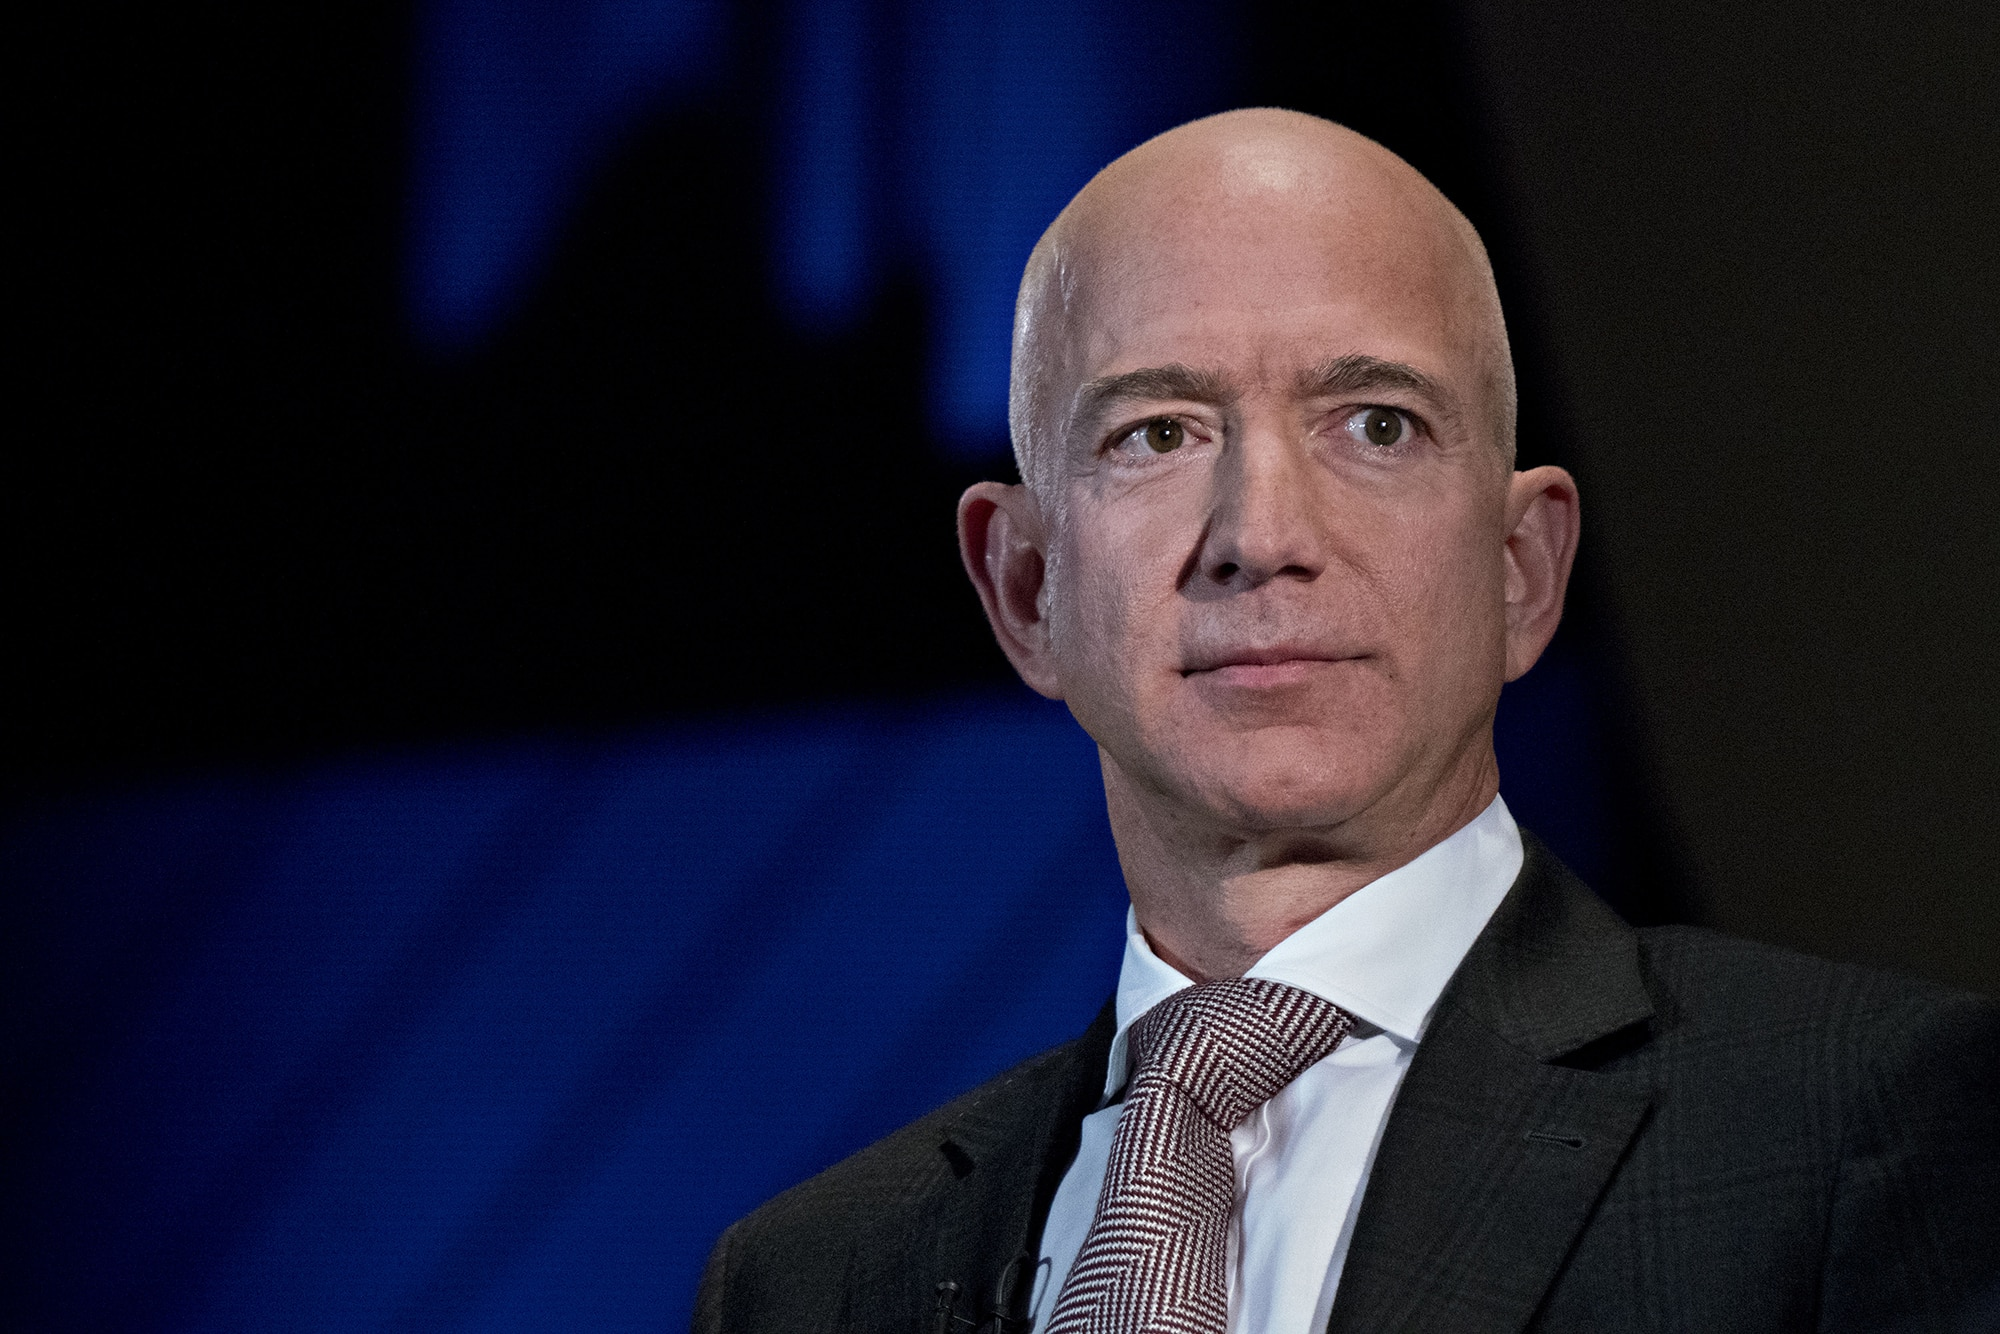 Jeff Bezos richest on Forbes list